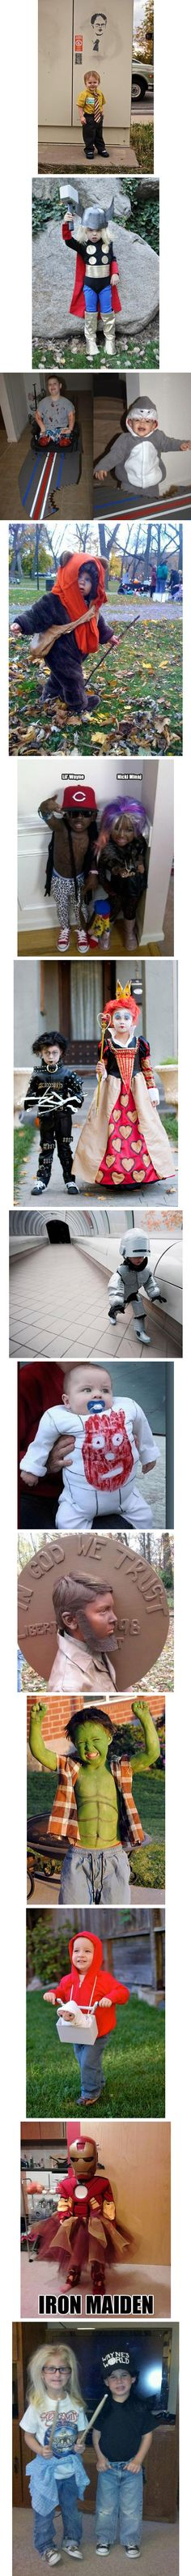 Parenting. You're doing it right. so cute and funny!!